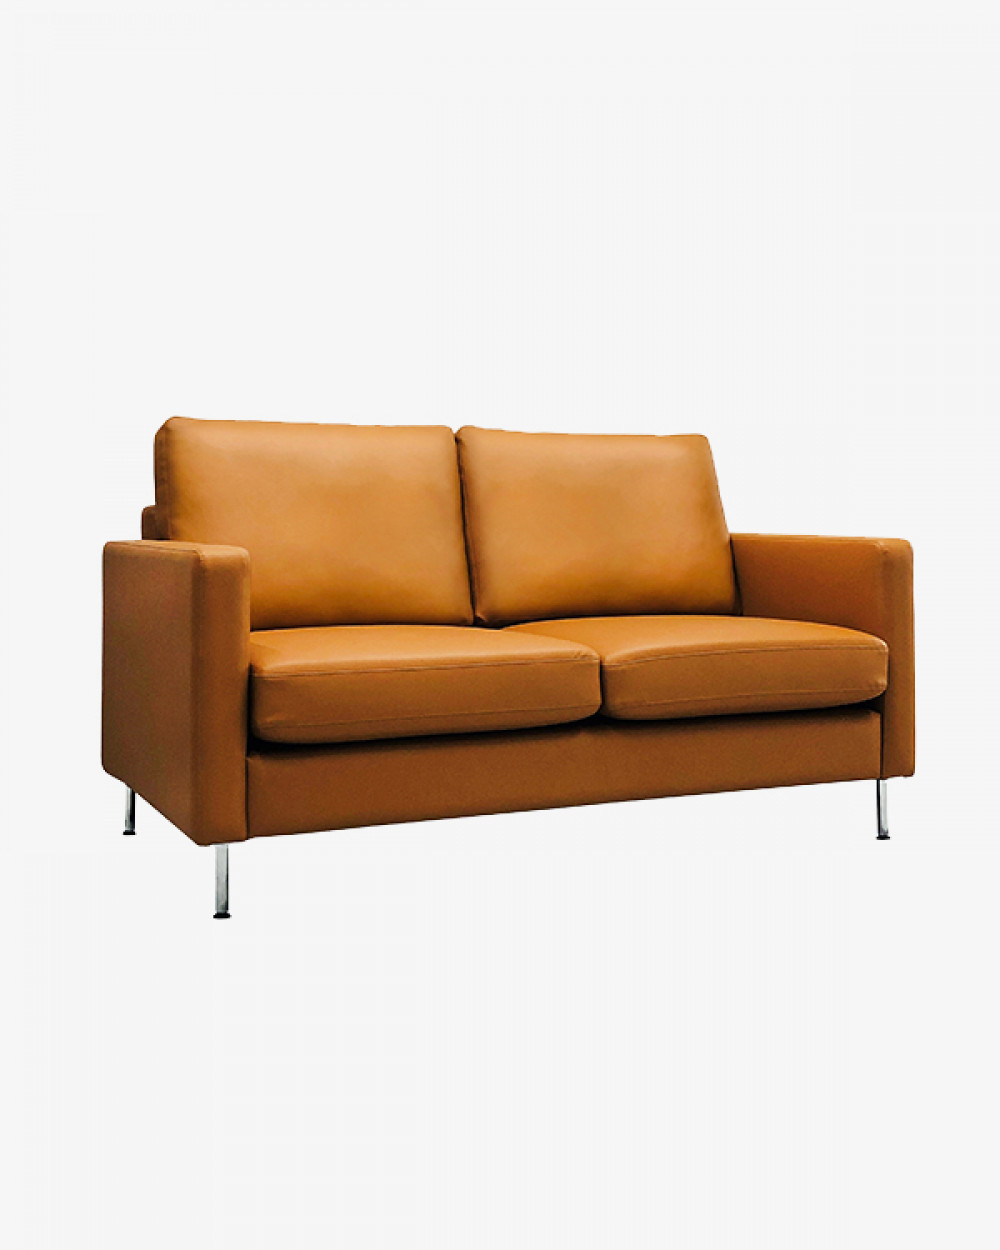 Elfro Sofa | 2 Seater